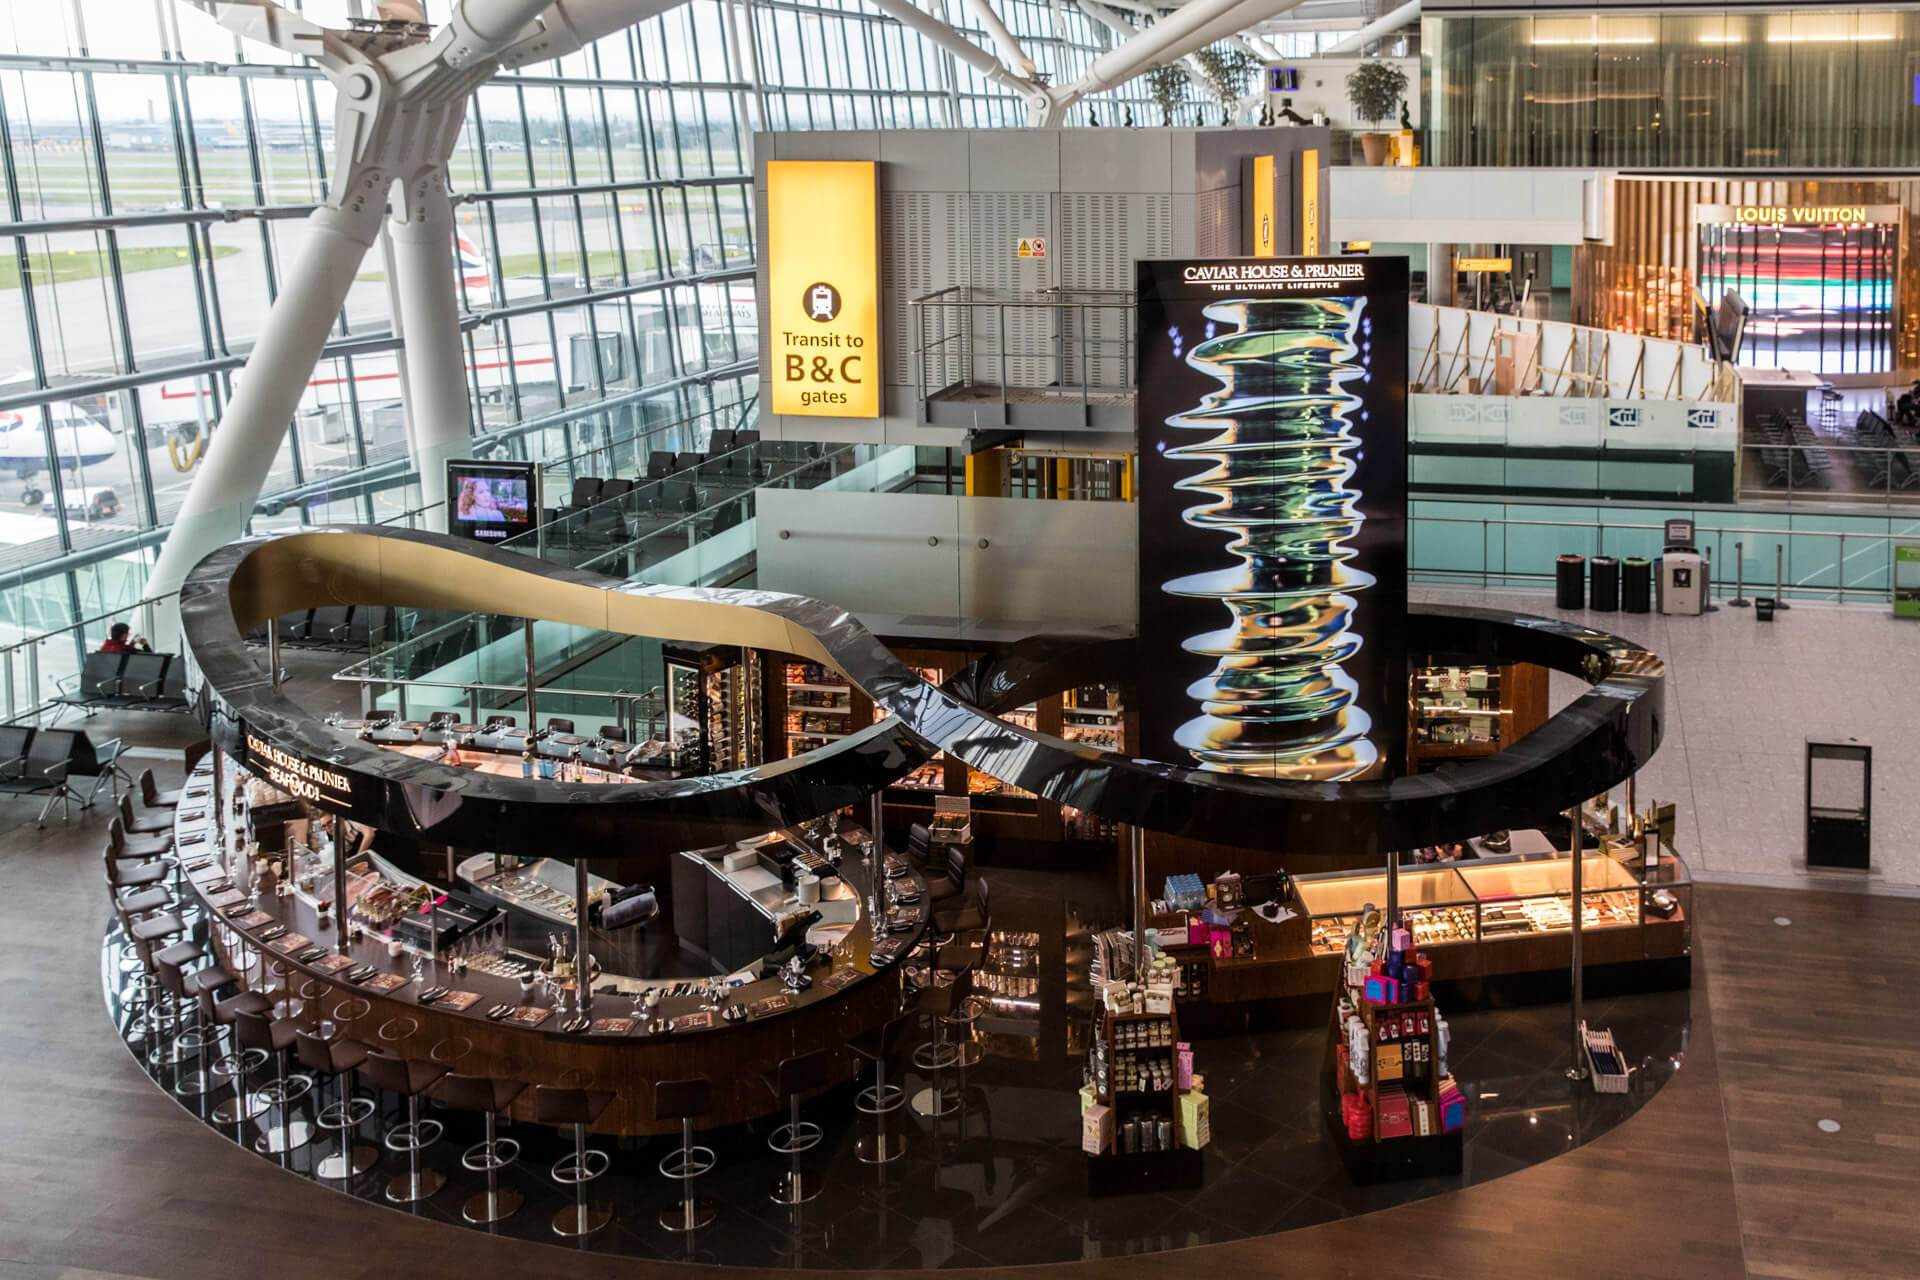 Bespoke Video Wall installation at Heathrow